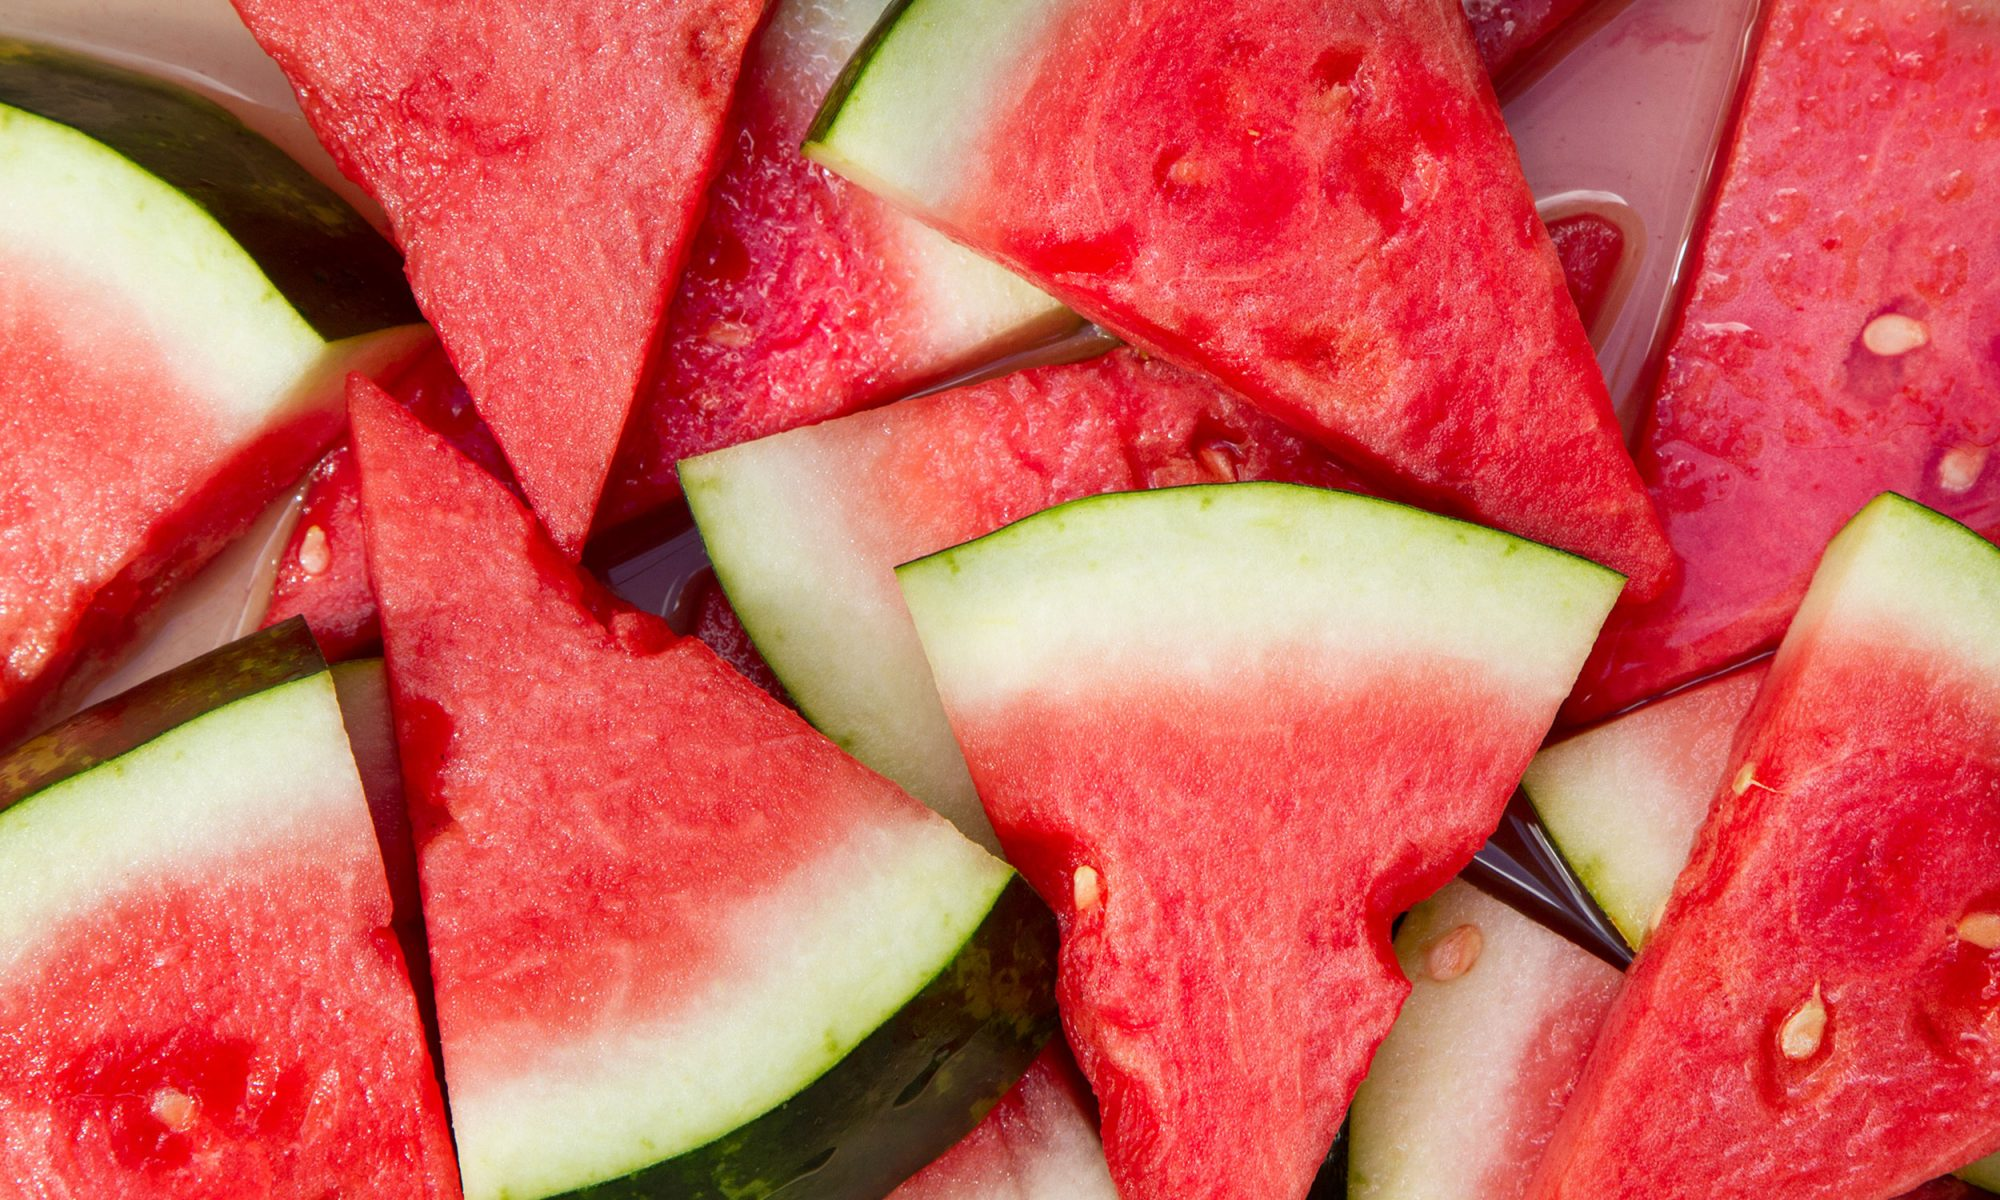 EC: Spike Your Watermelon with Tequila